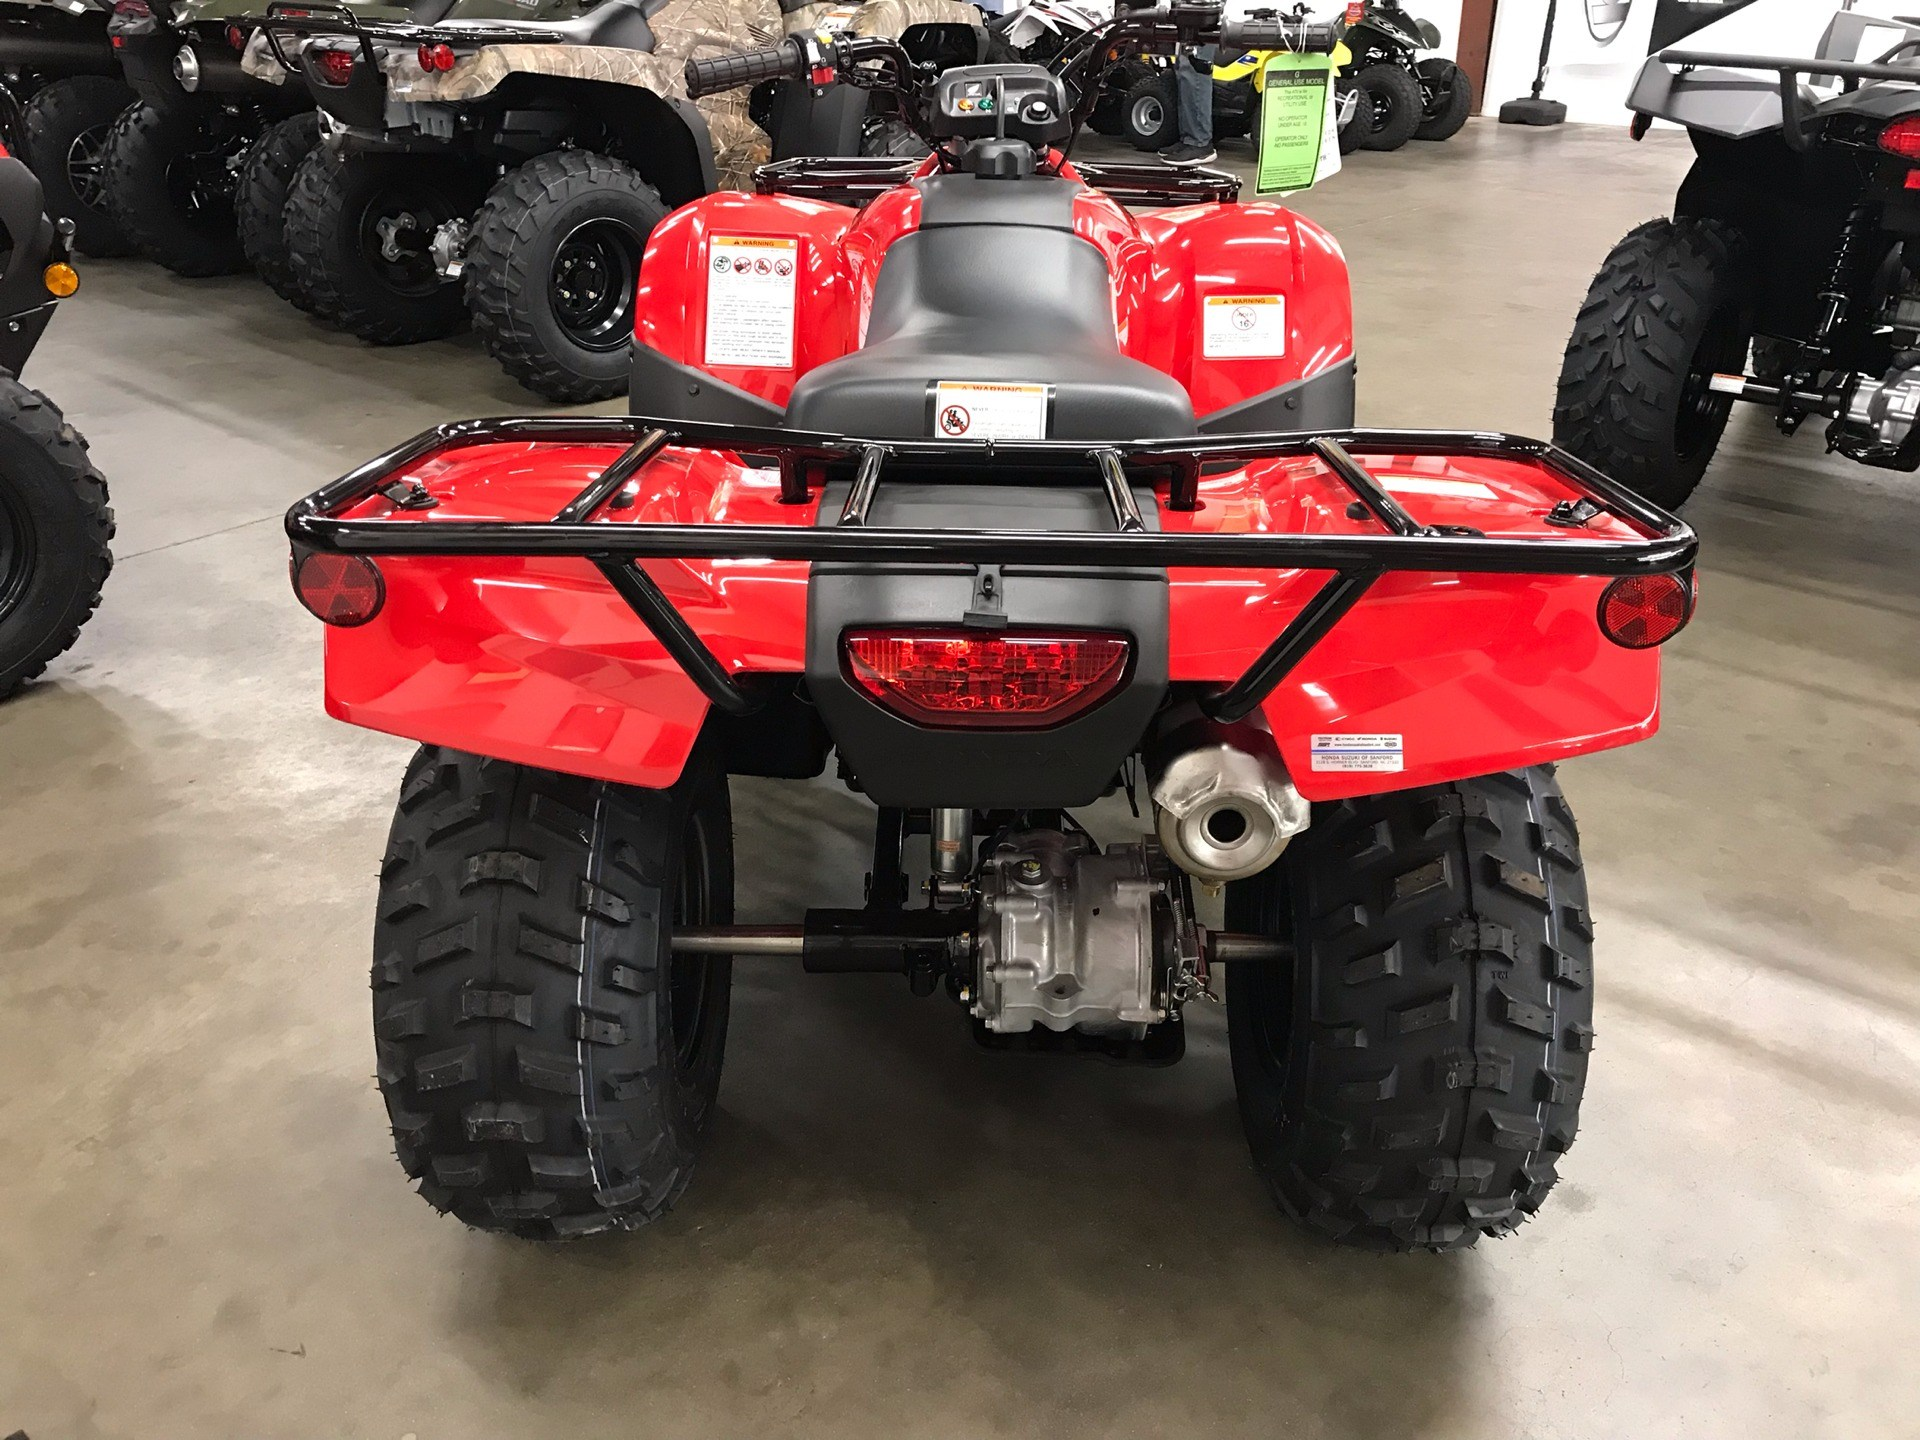 2019 Honda FourTrax Recon in Sanford, North Carolina - Photo 4